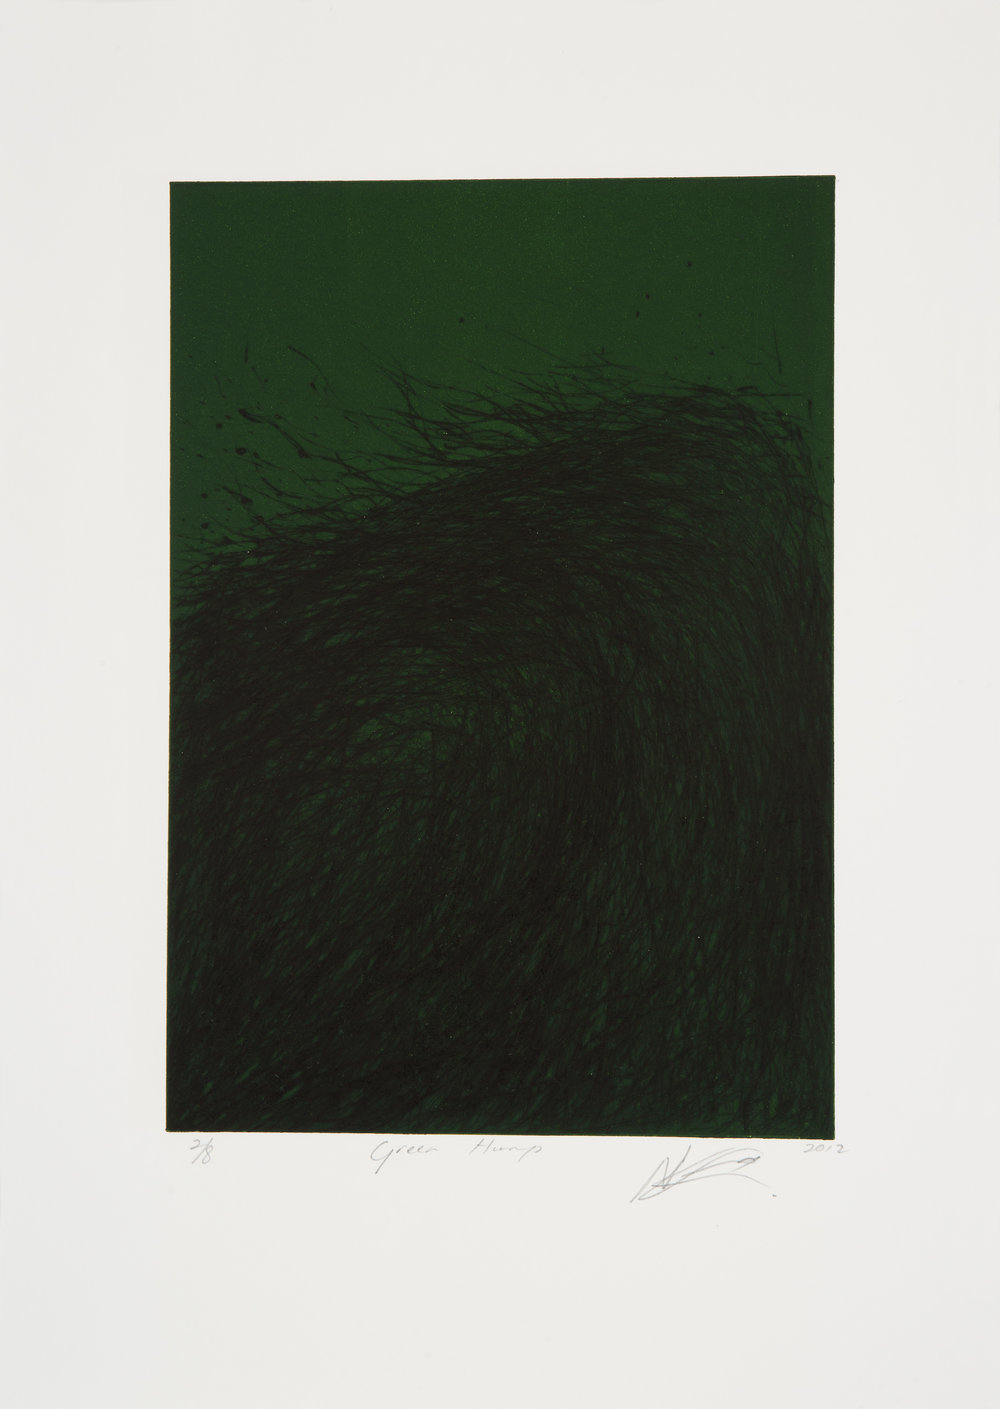 NANDIPHA MNTAMBO     Green Hump, 2012    Dry Point Etching (Edition of 8)  43cm x 31 cm